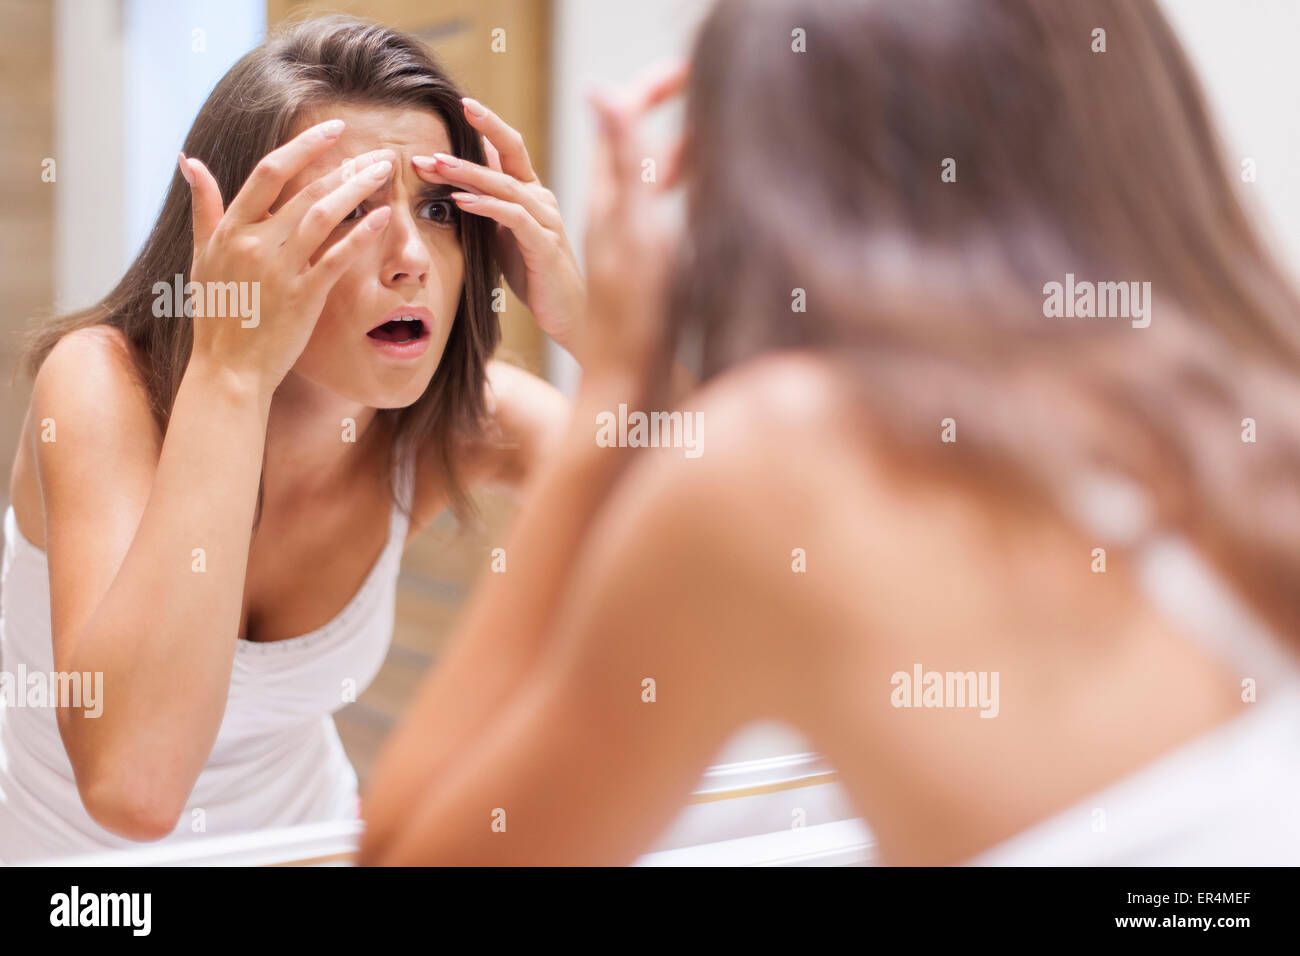 Shocked woman squeezing pimple in bathroom. Debica, Poland - Stock Image